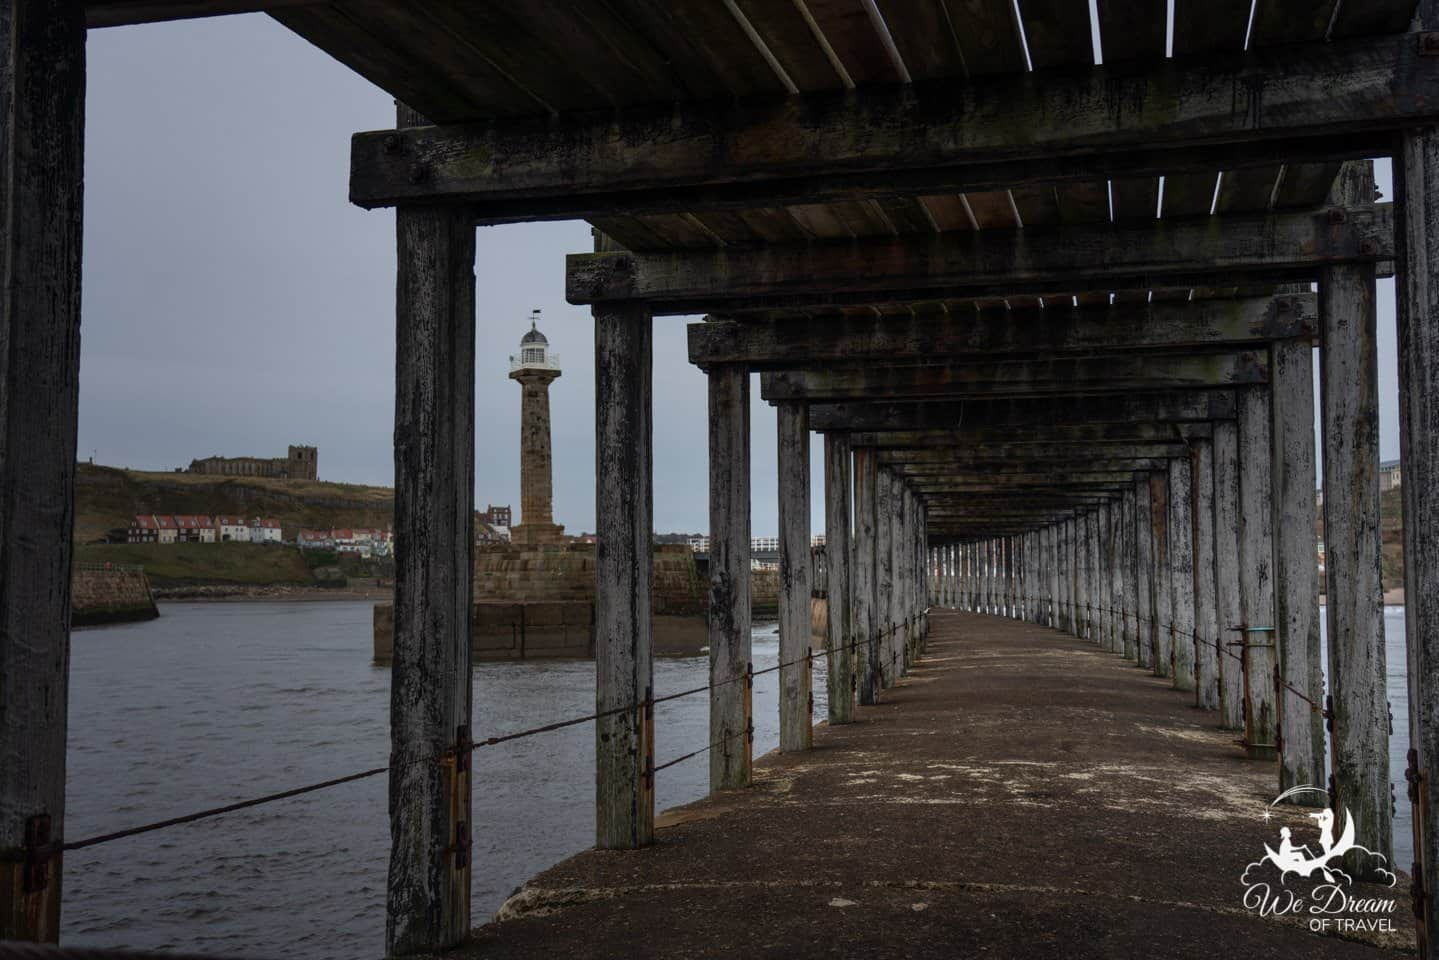 Lower tier of the west pier in Whitby.